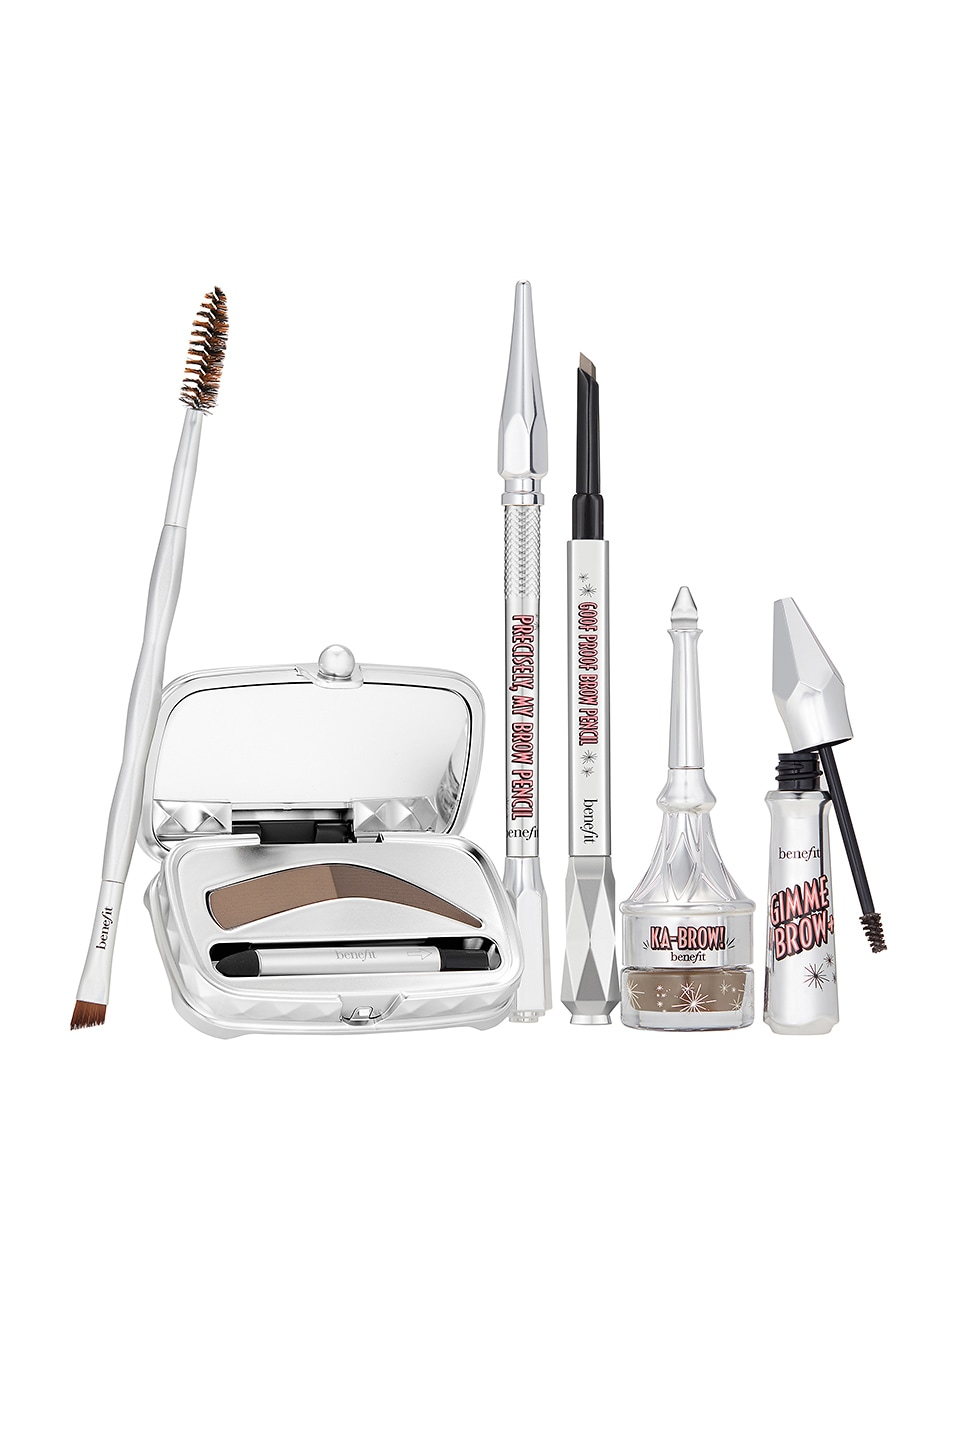 Benefit Cosmetics Magical Brow Stars! Blockbuster Brow Set in Shade 3